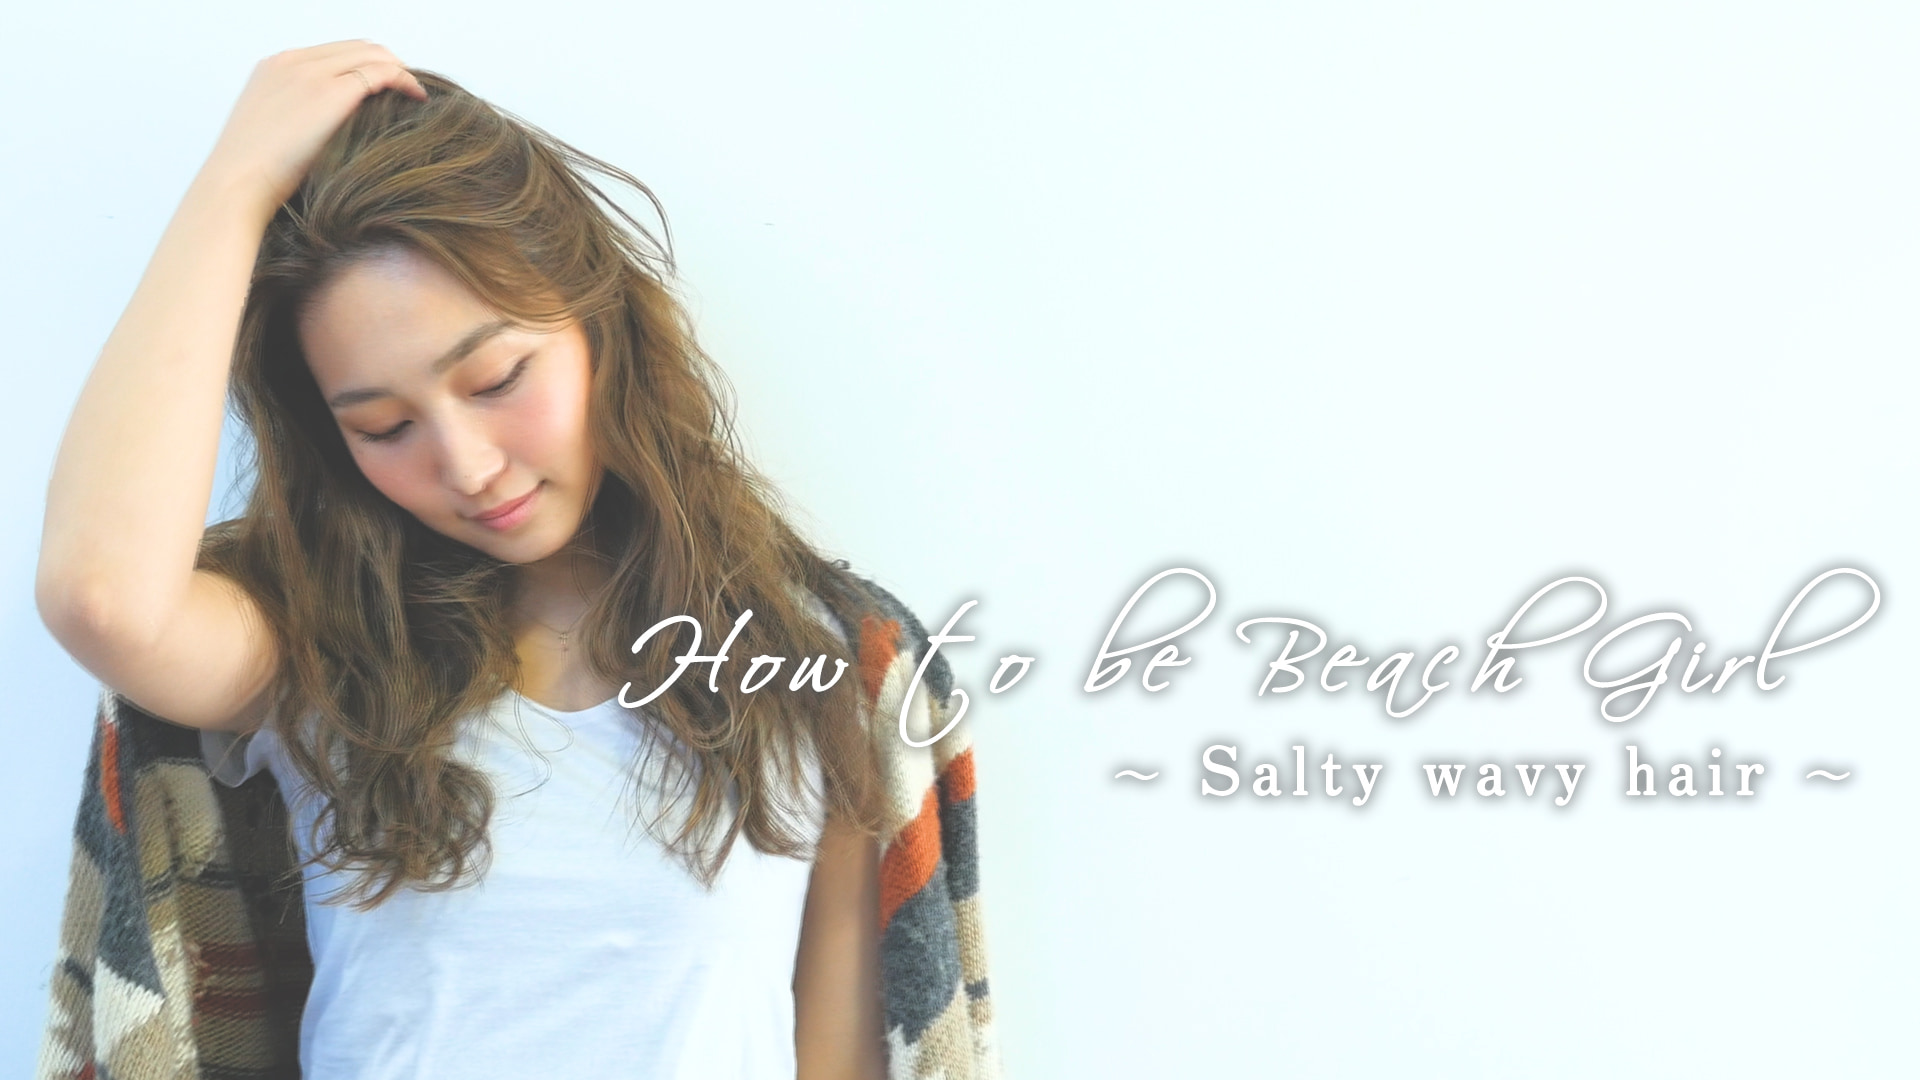 HOW TO BE BEACH GIRL〜Salty wavy hair/ヘア編〜